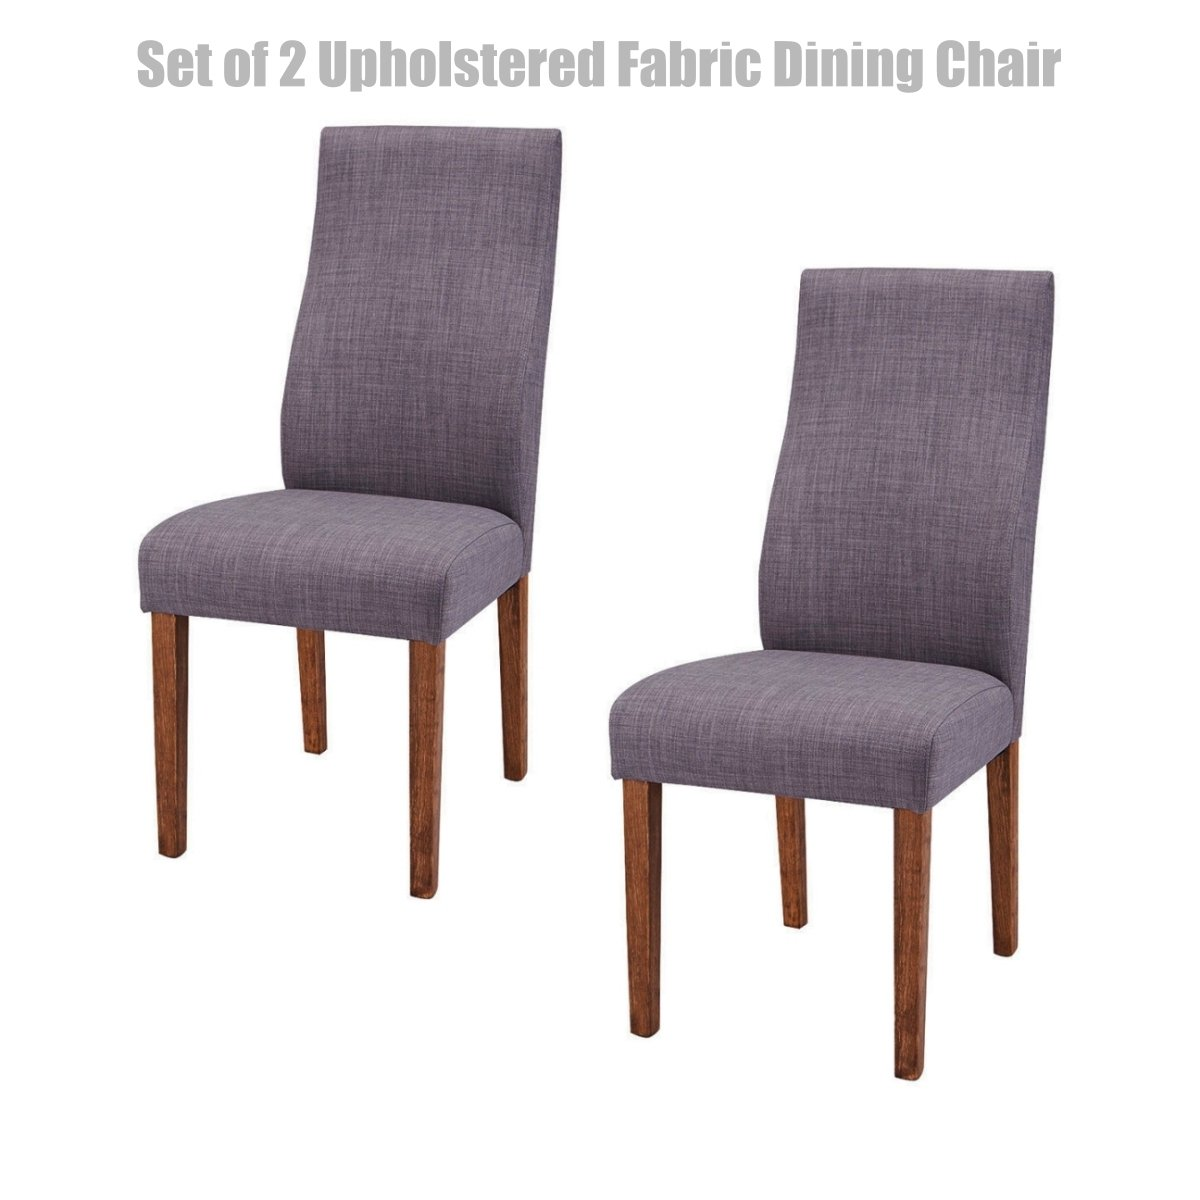 Modern design fabric upholstered dining chairs sturdy durable wood frame breathable linen cover seat comfortable high density padded cushion home office